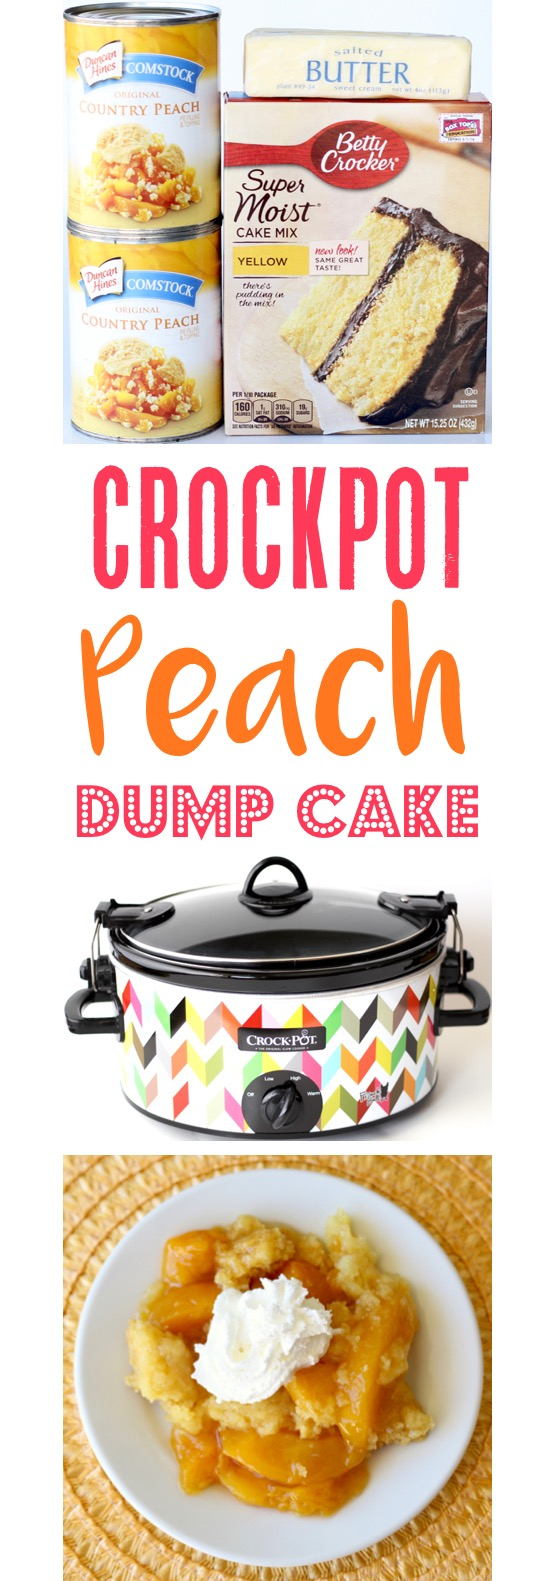 Crockpot Peach Dump Cake Recipe Easy | TheFrugalGirls.com